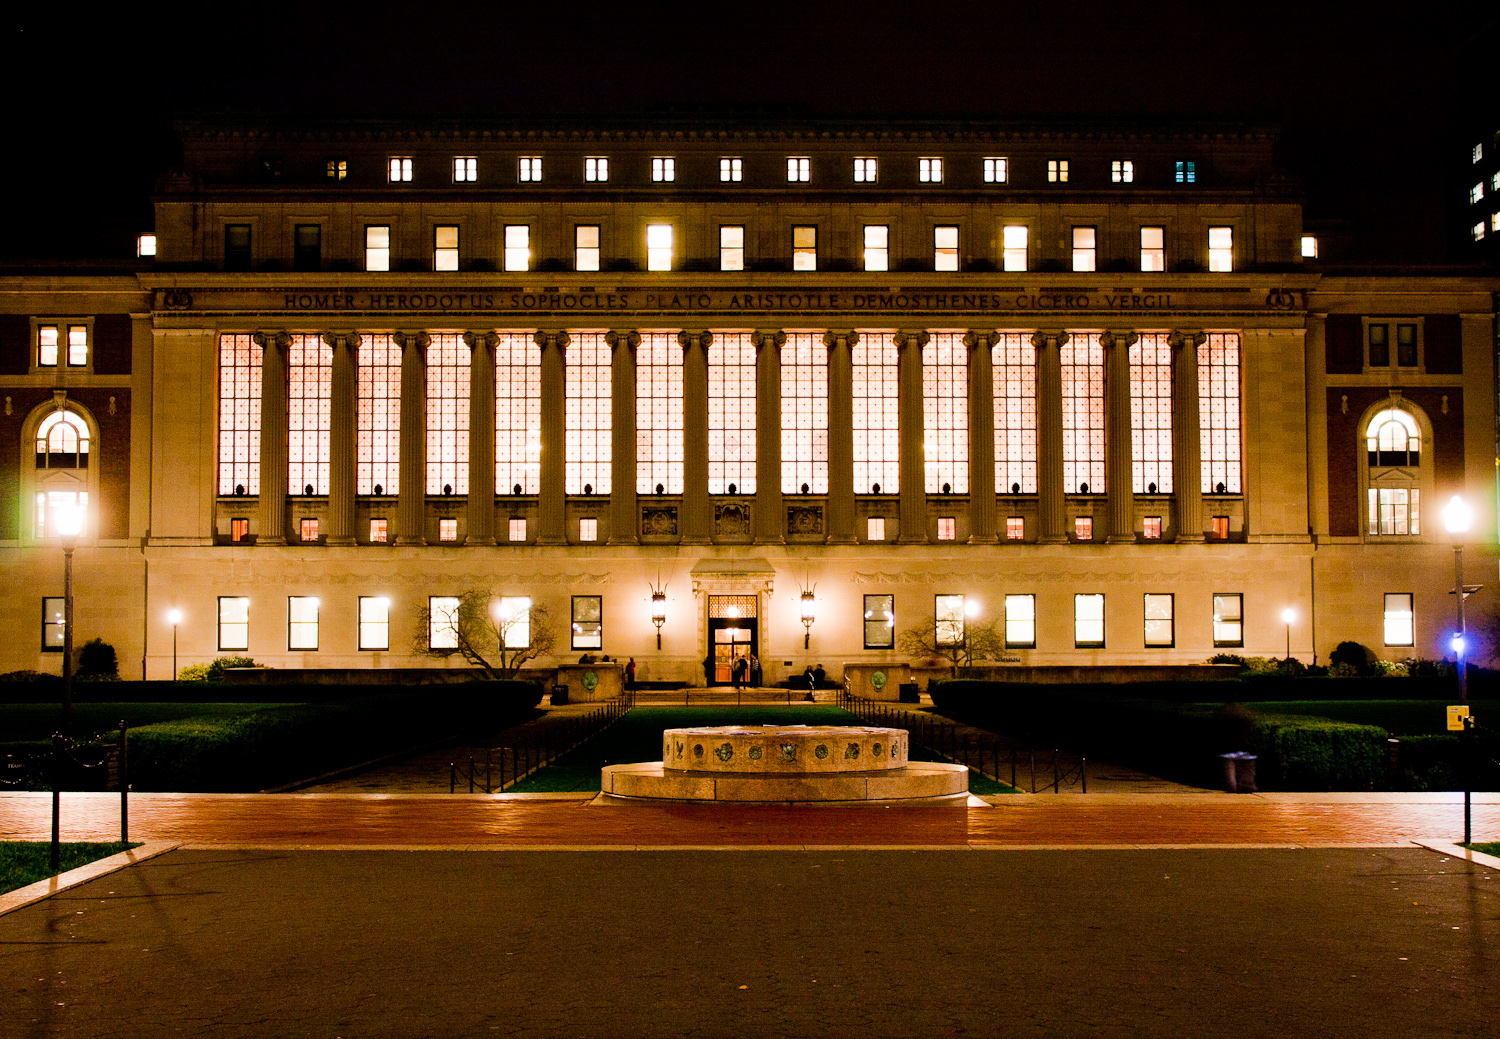 Top 100 Largest Libraries In The World - P95.Bizzell